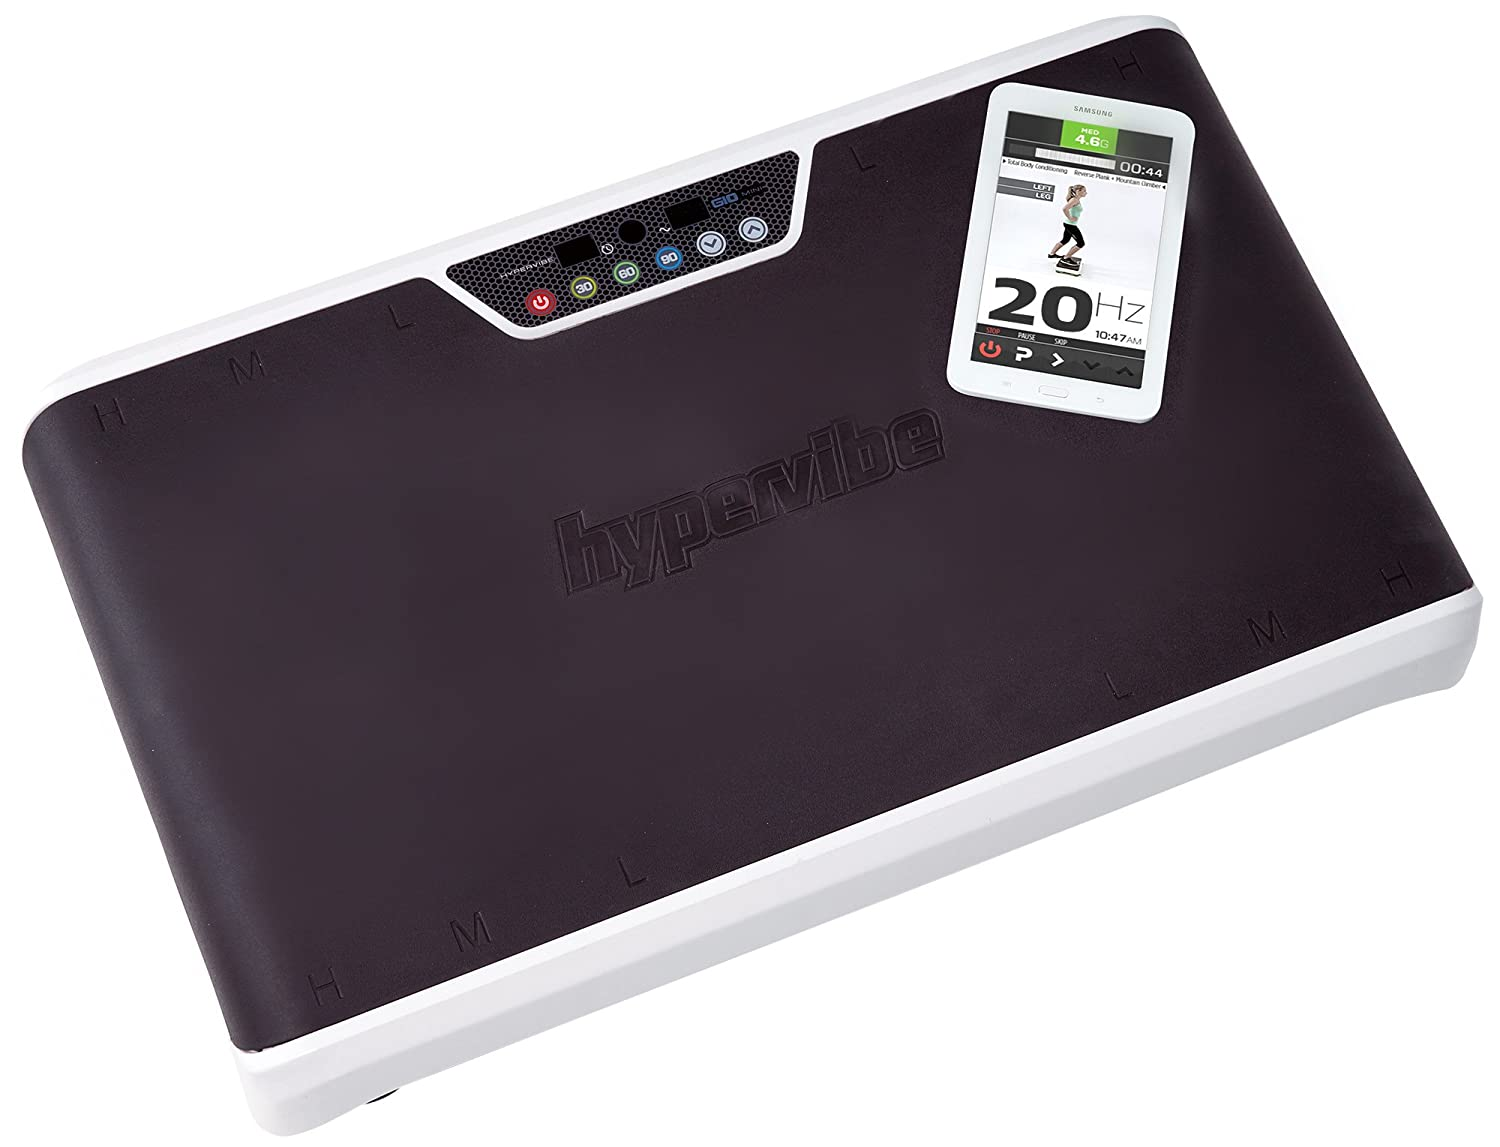 Hypervibe G-10 Whole Body Vibration Machine with Mobile App: The Best Whole  Body Vibration Plate on The Market! Great Power Plate Vibration Therapy